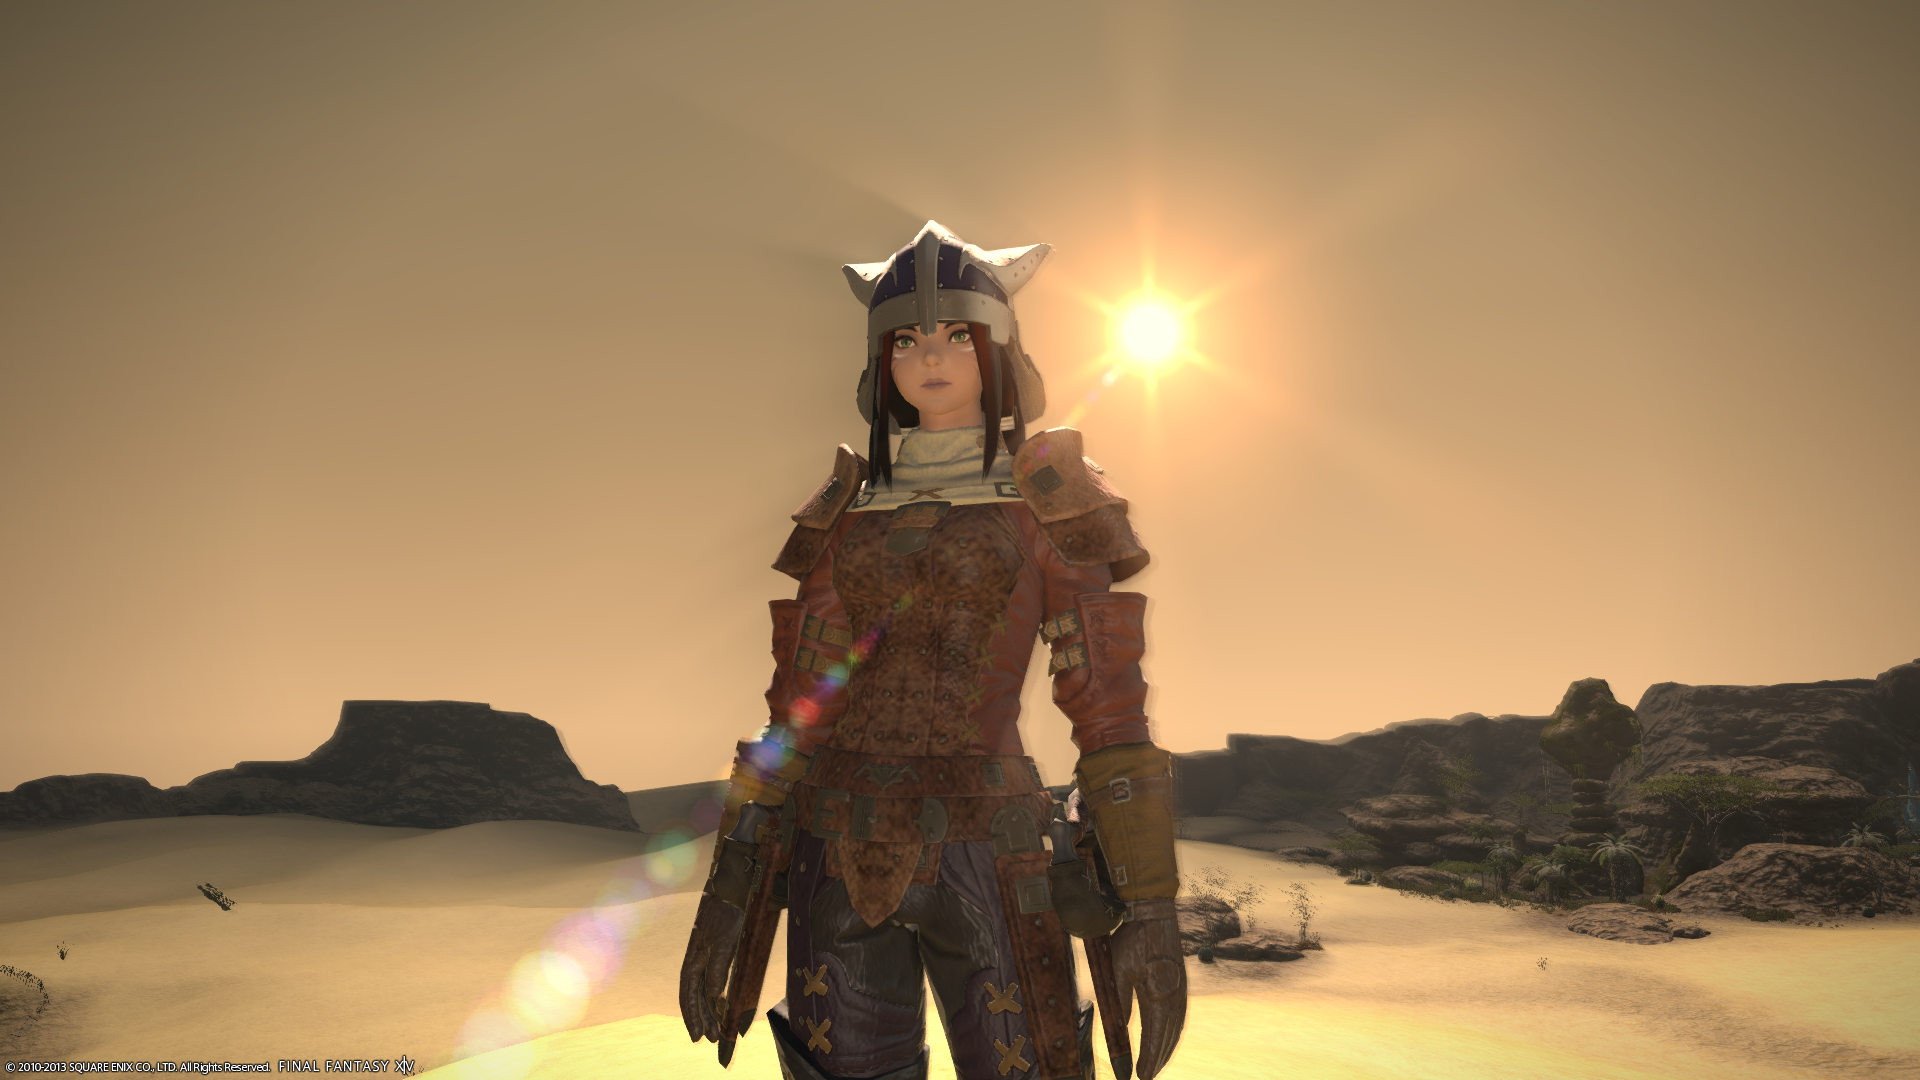 nitsuki ffxiv scaling them hurts down bucket size file need bigger 1920 stupid reborn screenshot thread realm fantasy 1017 somewhat less with release final